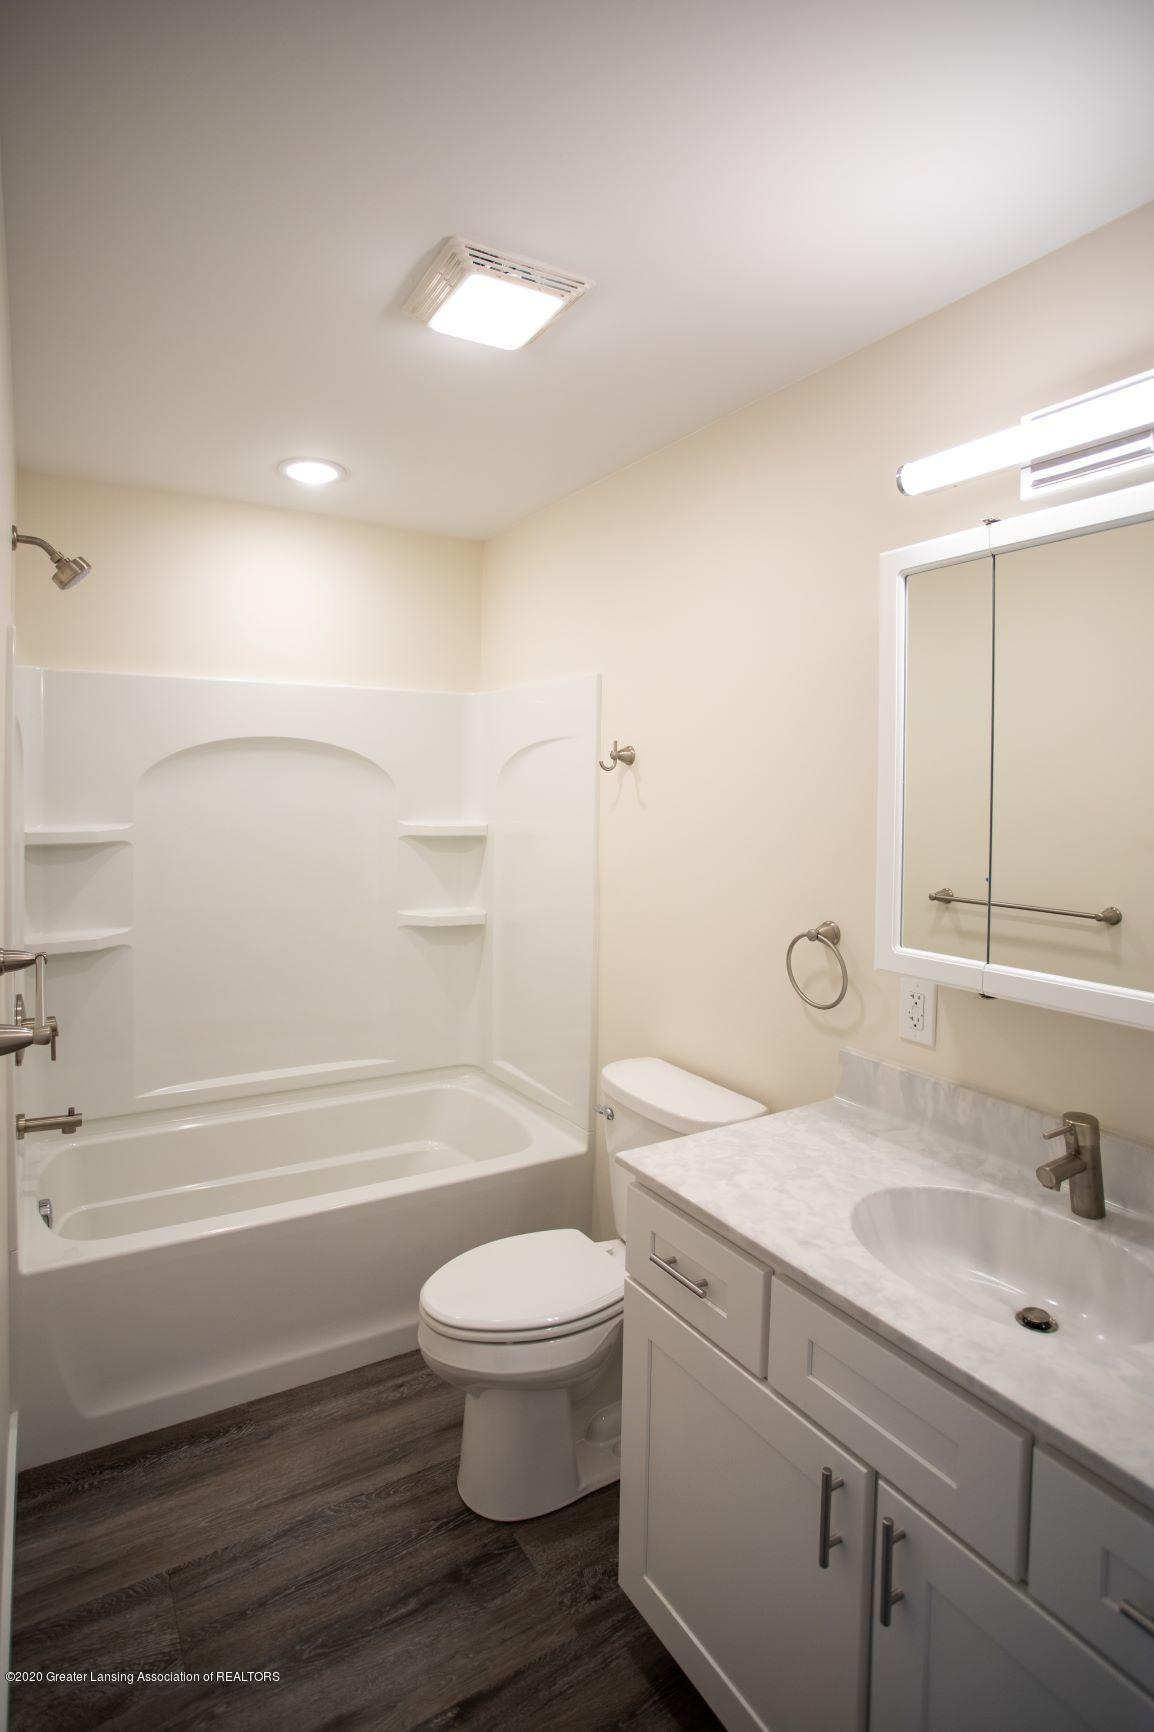 414 Haven St 2 - GB3A8020200313041102028 - 21